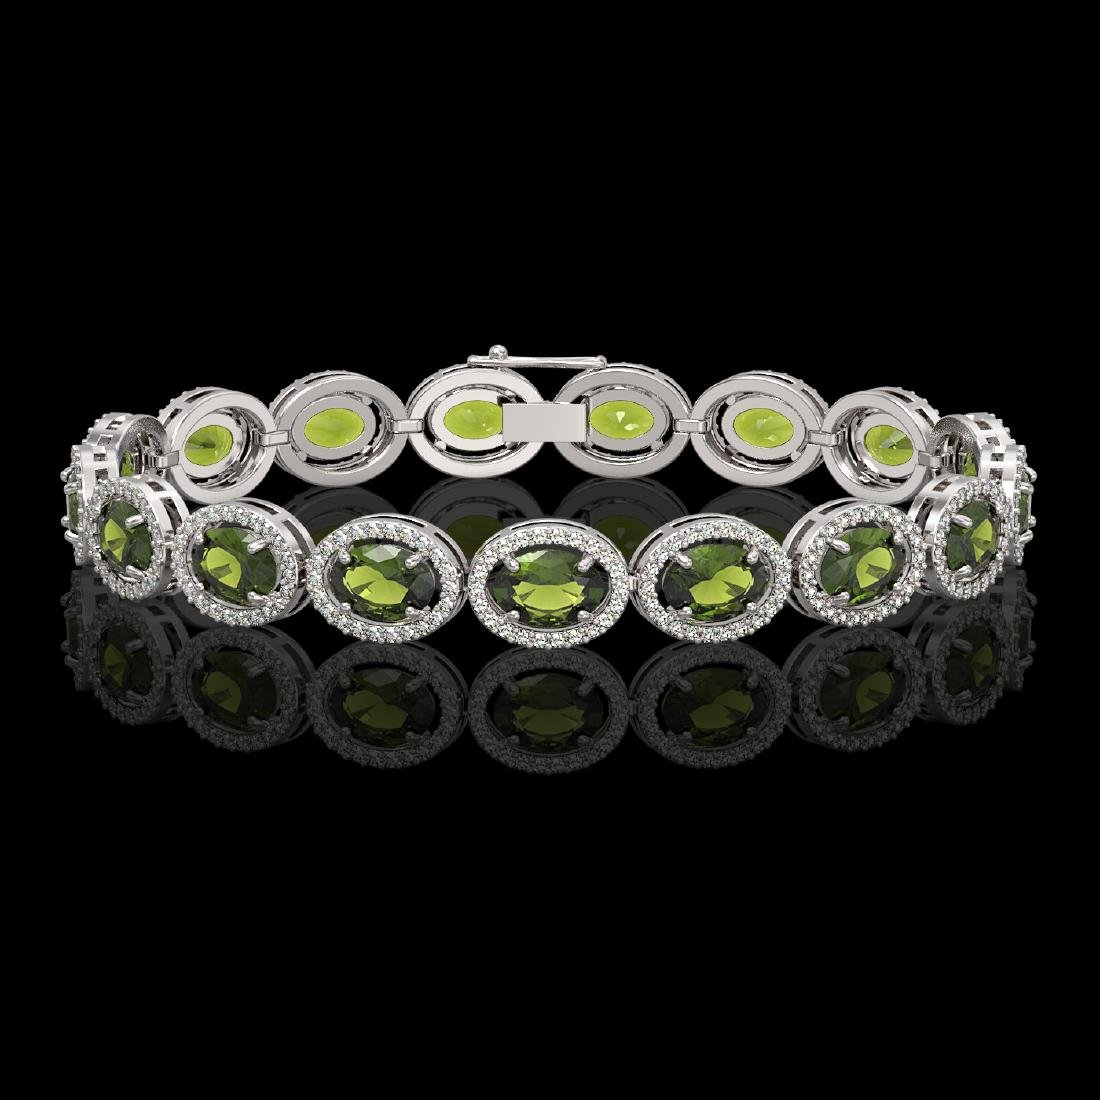 21.71 CTW Tourmaline & Diamond Halo Bracelet 10K White